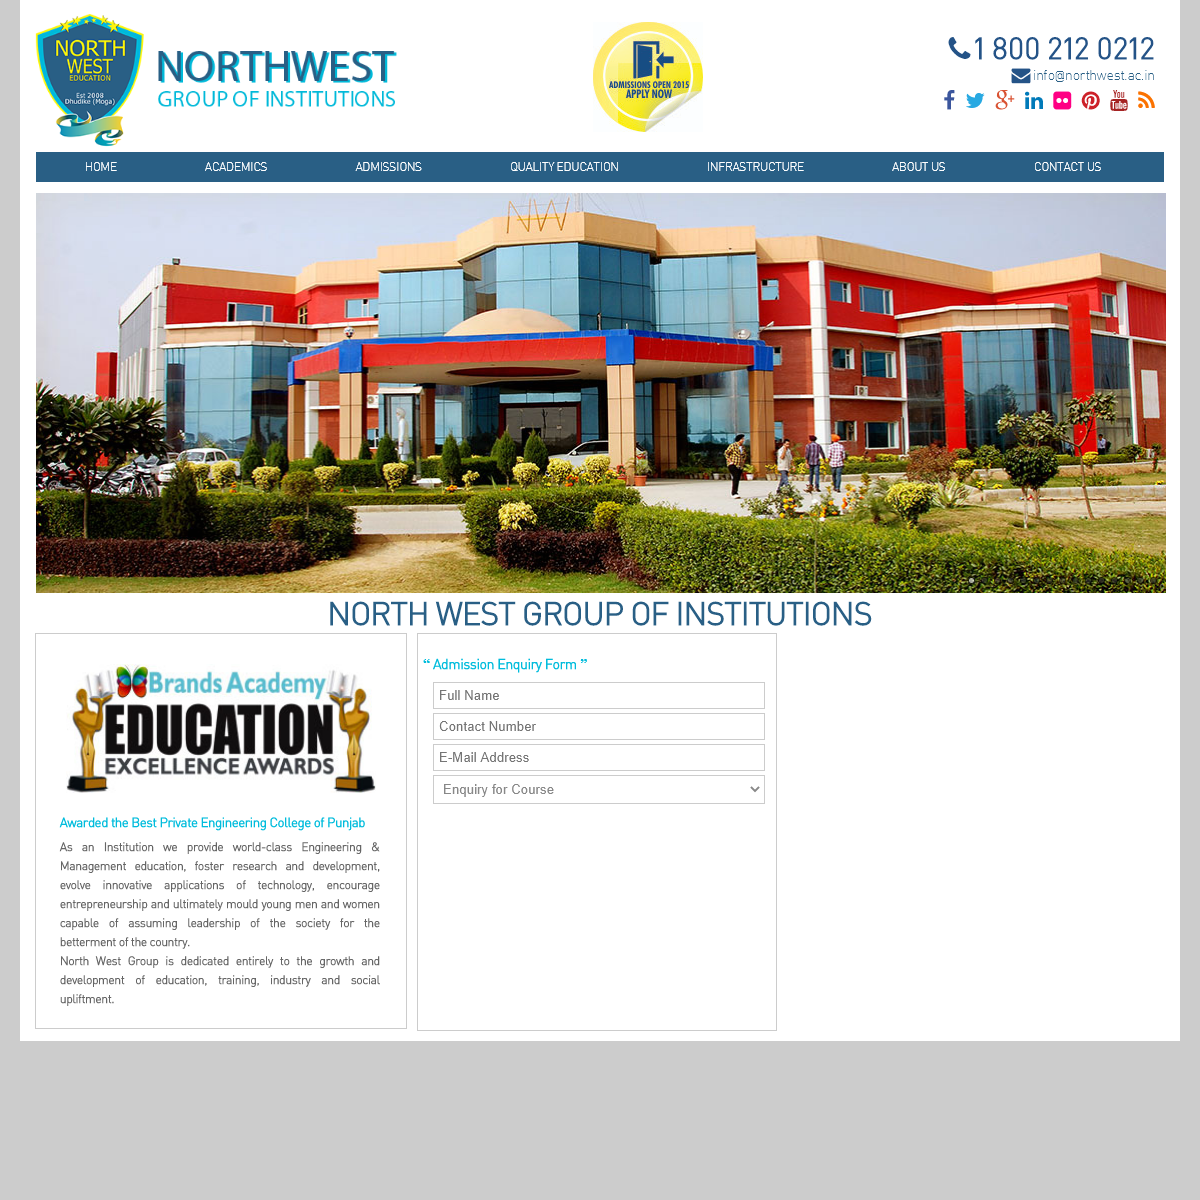 NORTH WEST Group of Institutions - An Inspirational College in the Region